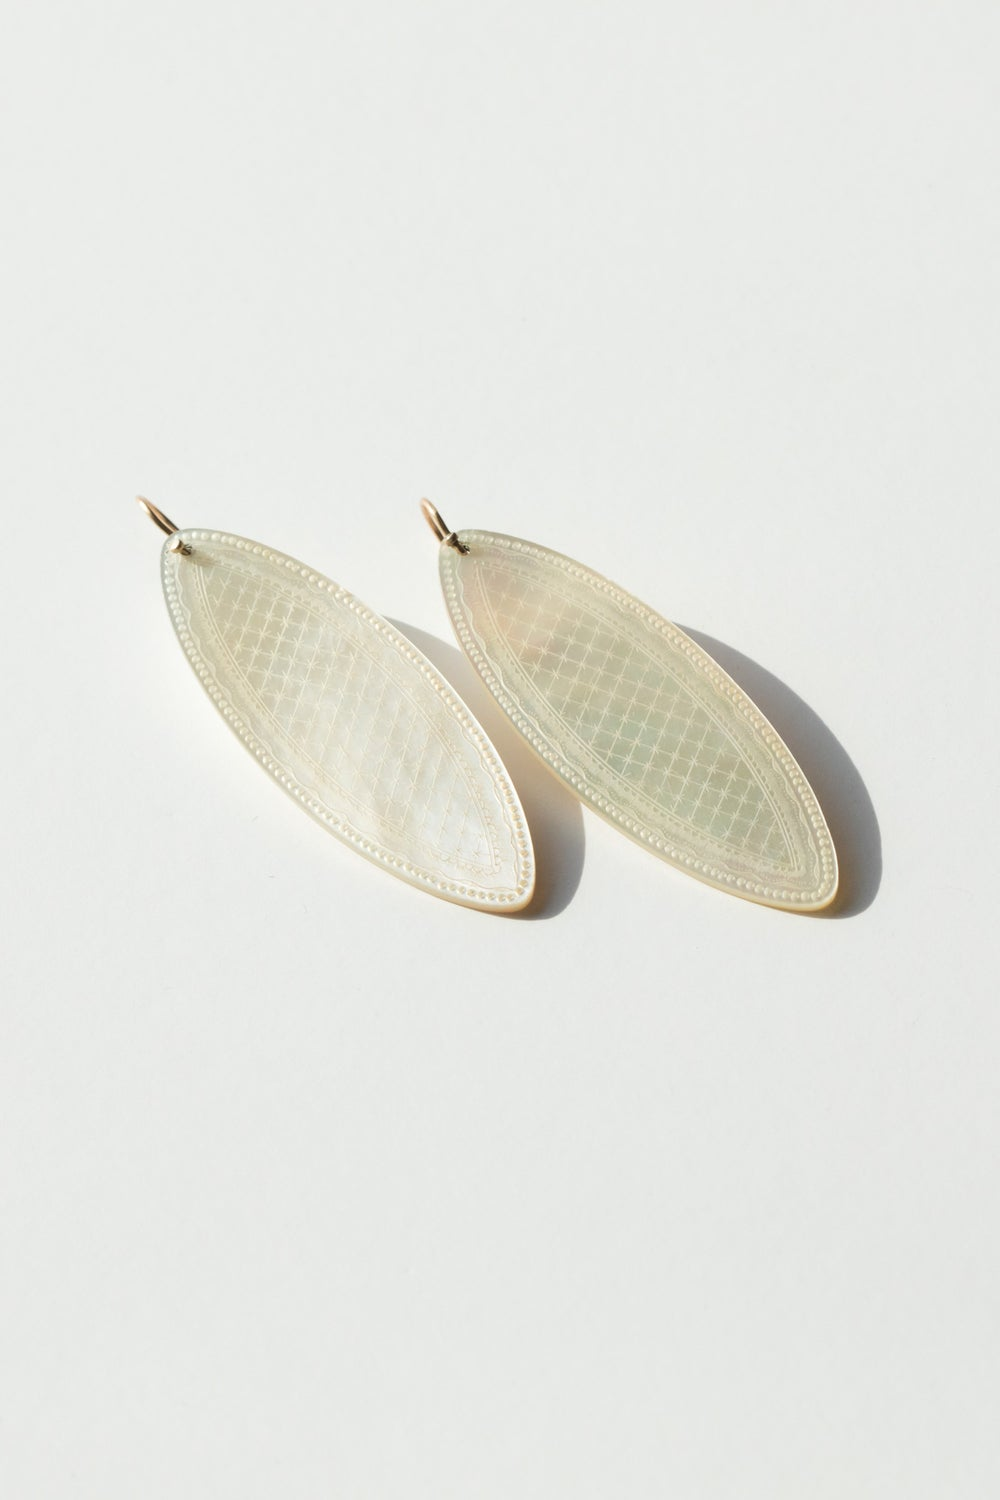 Image of Mother Of Pearl Oval Earrings